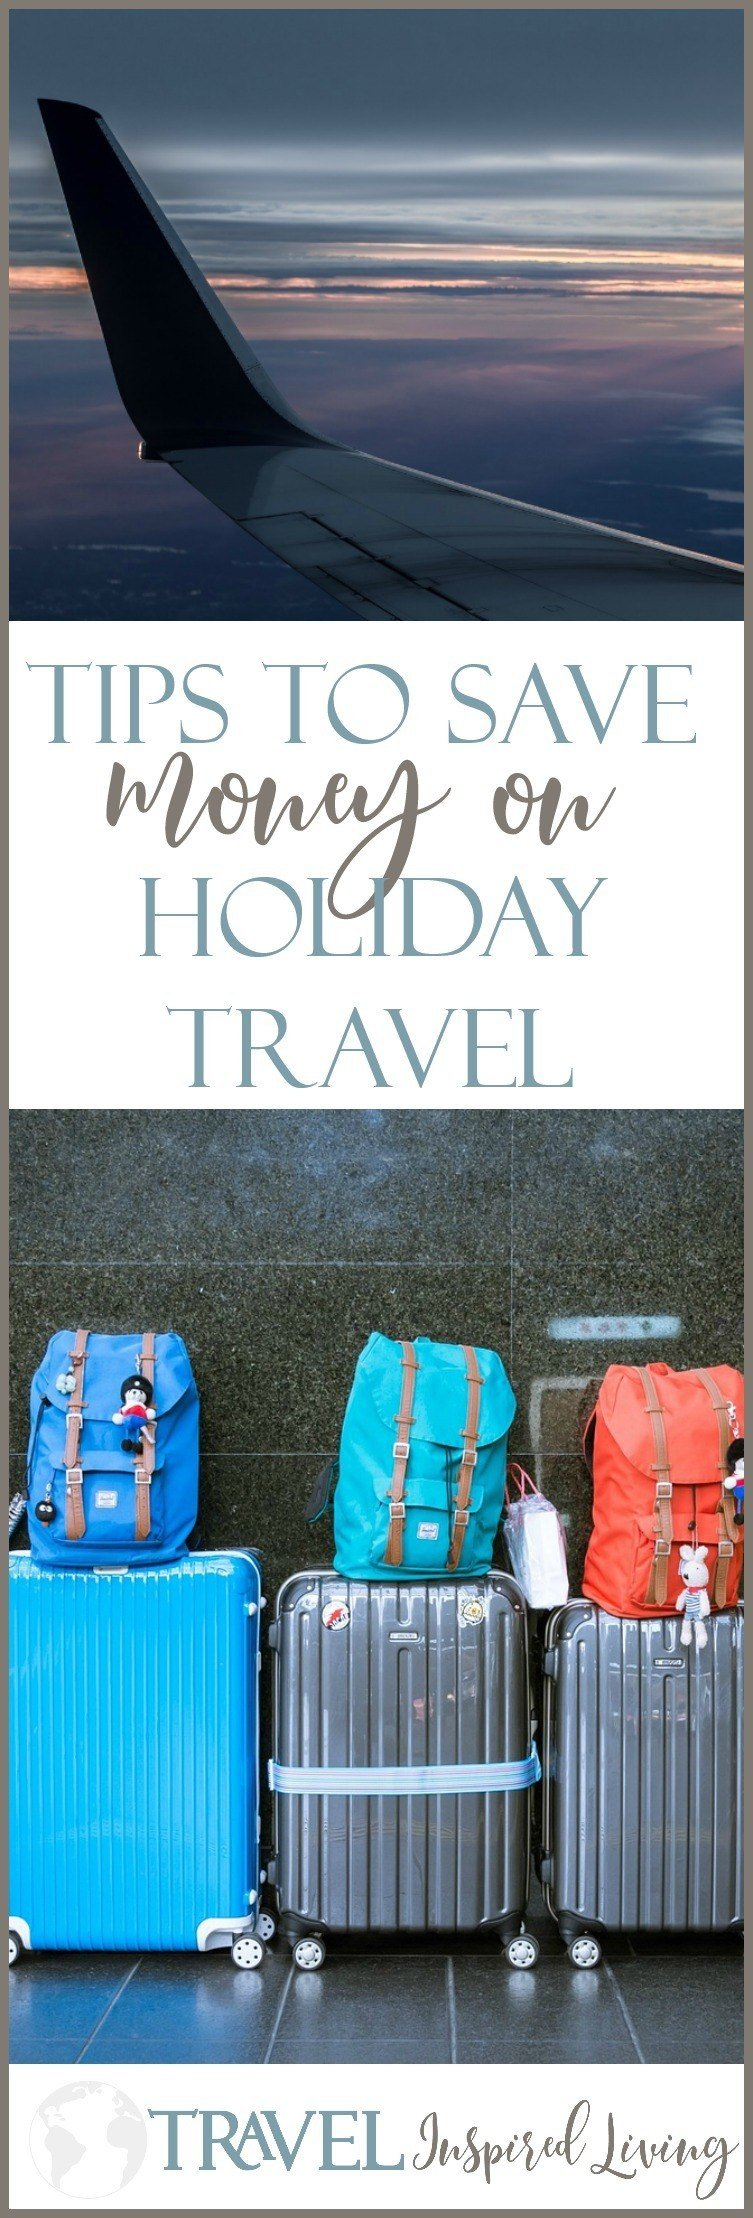 Helpful Tips for Travel Savings During the Holidays